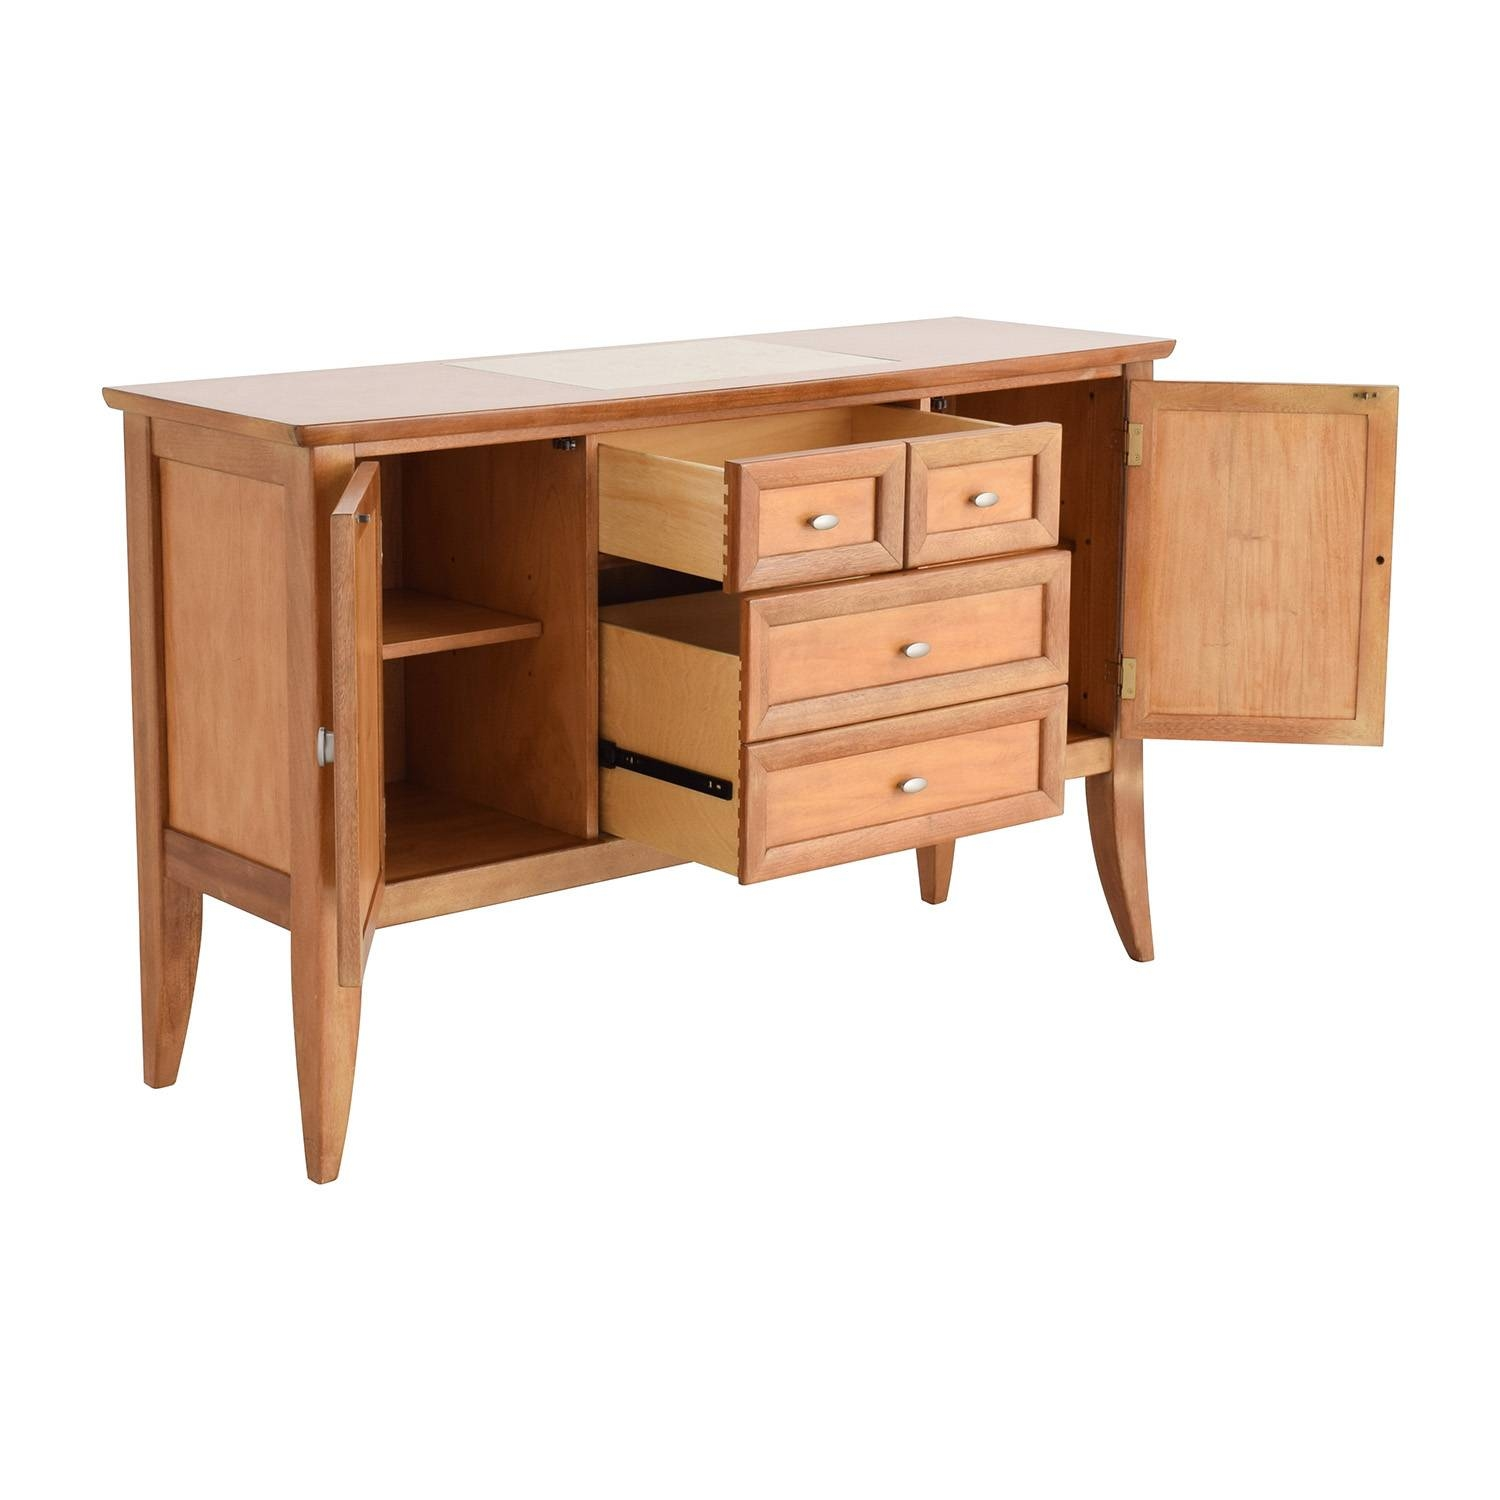 90% Off   Thomasville Thomasville Buffet Table / Storage Within Thomasville Sideboards (Photo 13 of 15)